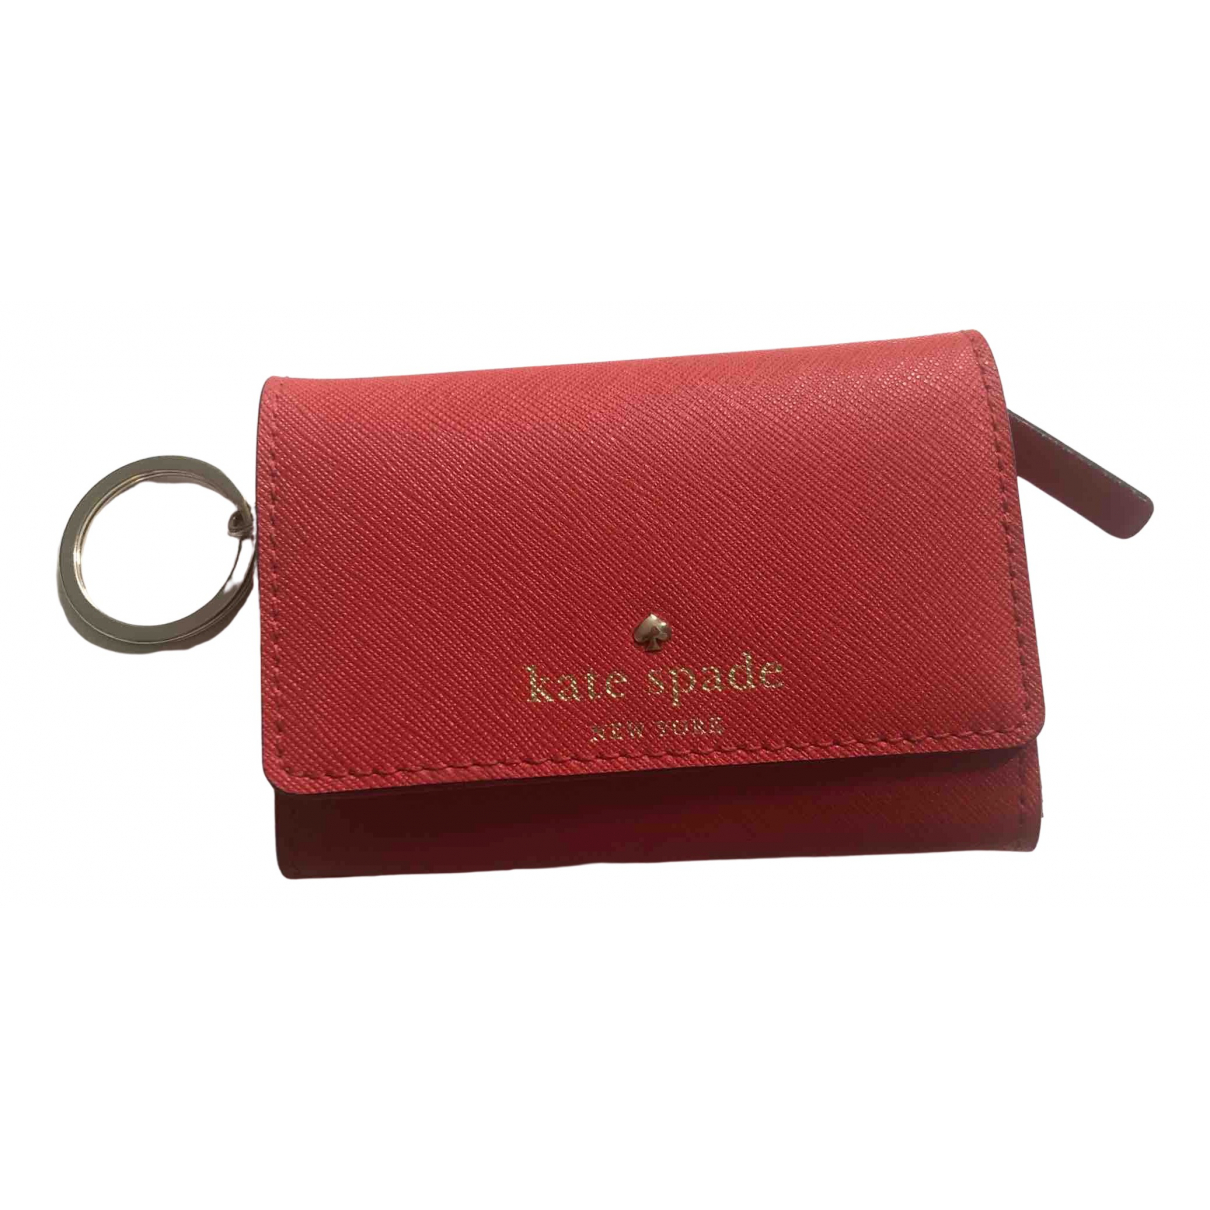 Kate Spade \N Red Leather wallet for Women \N